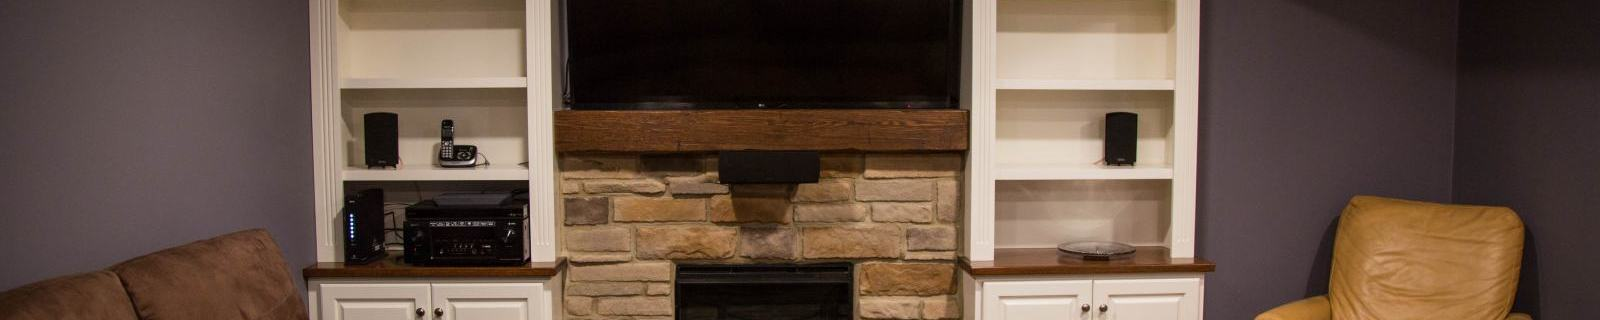 entertainment center with fireplace and built-in side shelving in finished basement